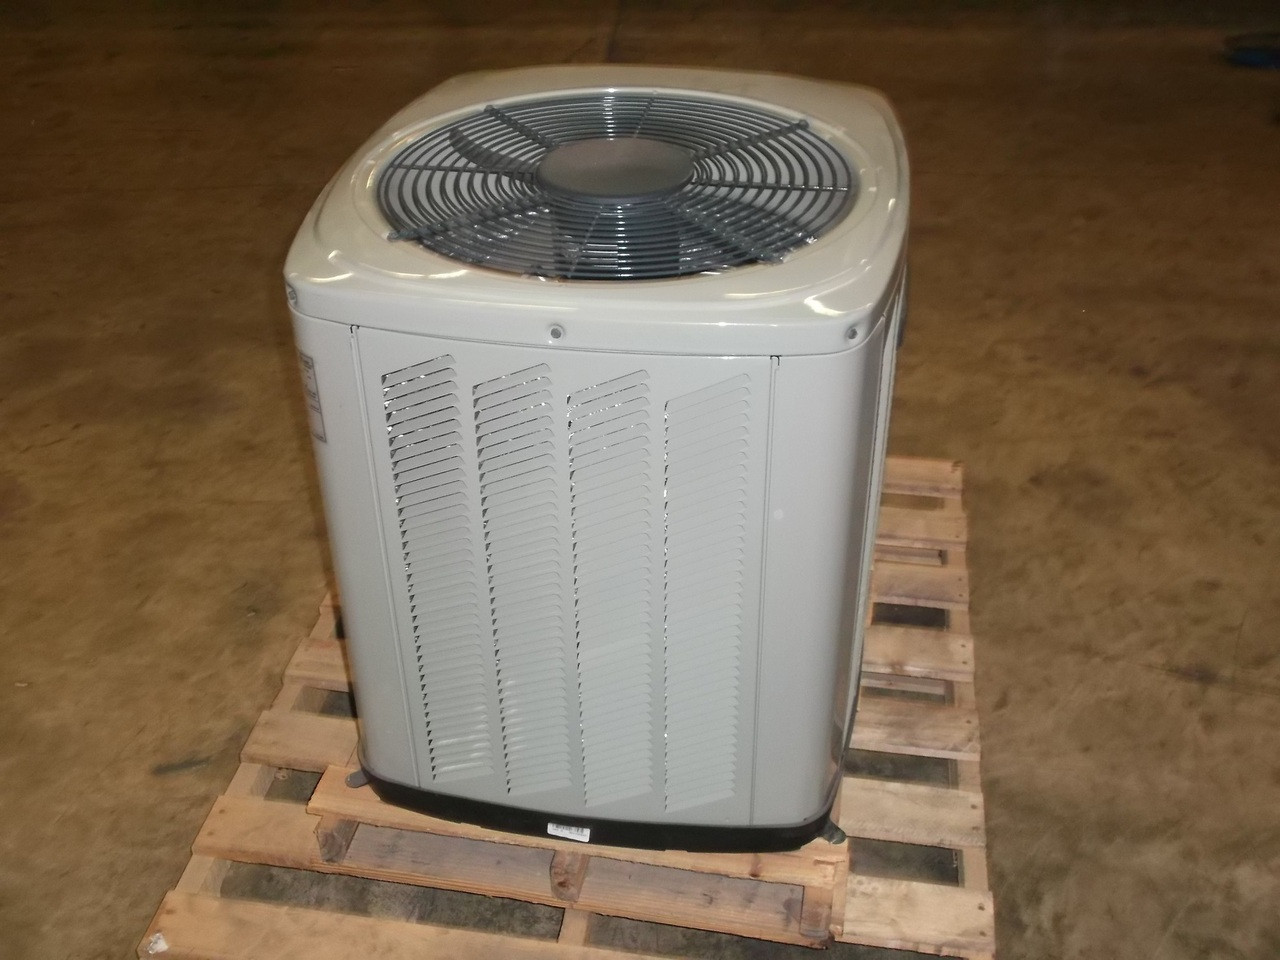 R Heat Pumps For Mobile Homes on